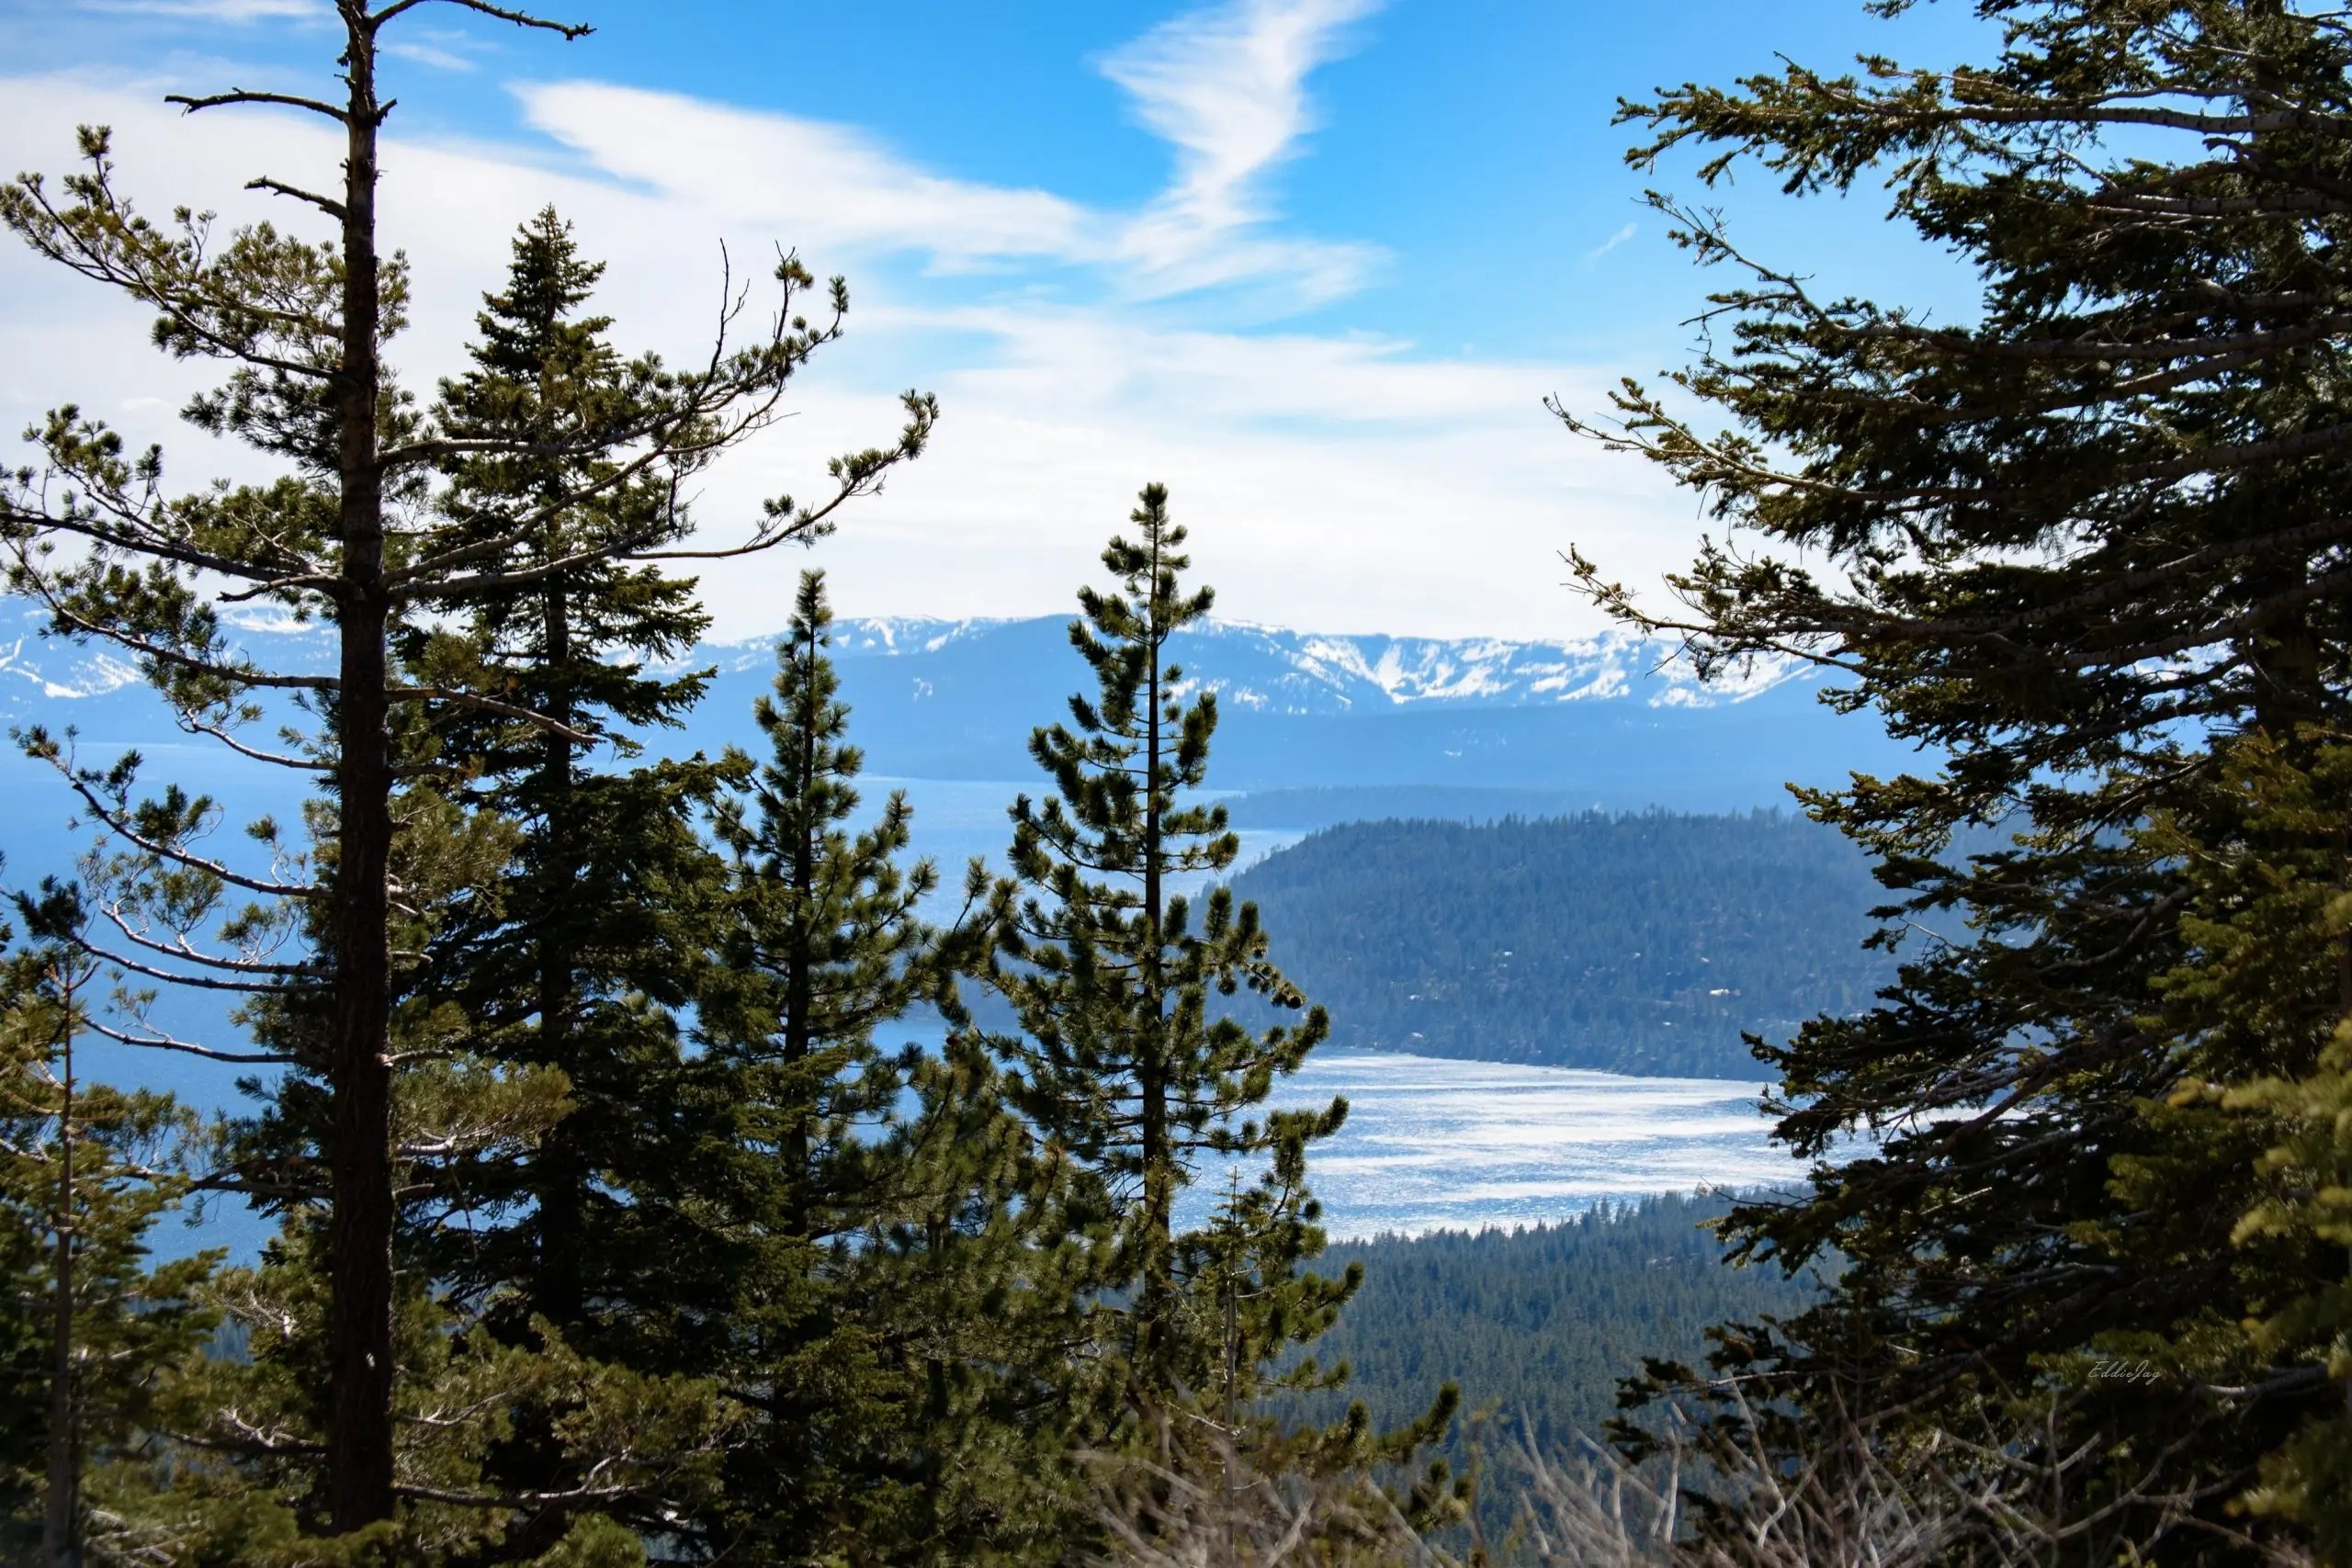 Panoramic view of Lake Tahoe through the frames of tall pine trees in the foreground.